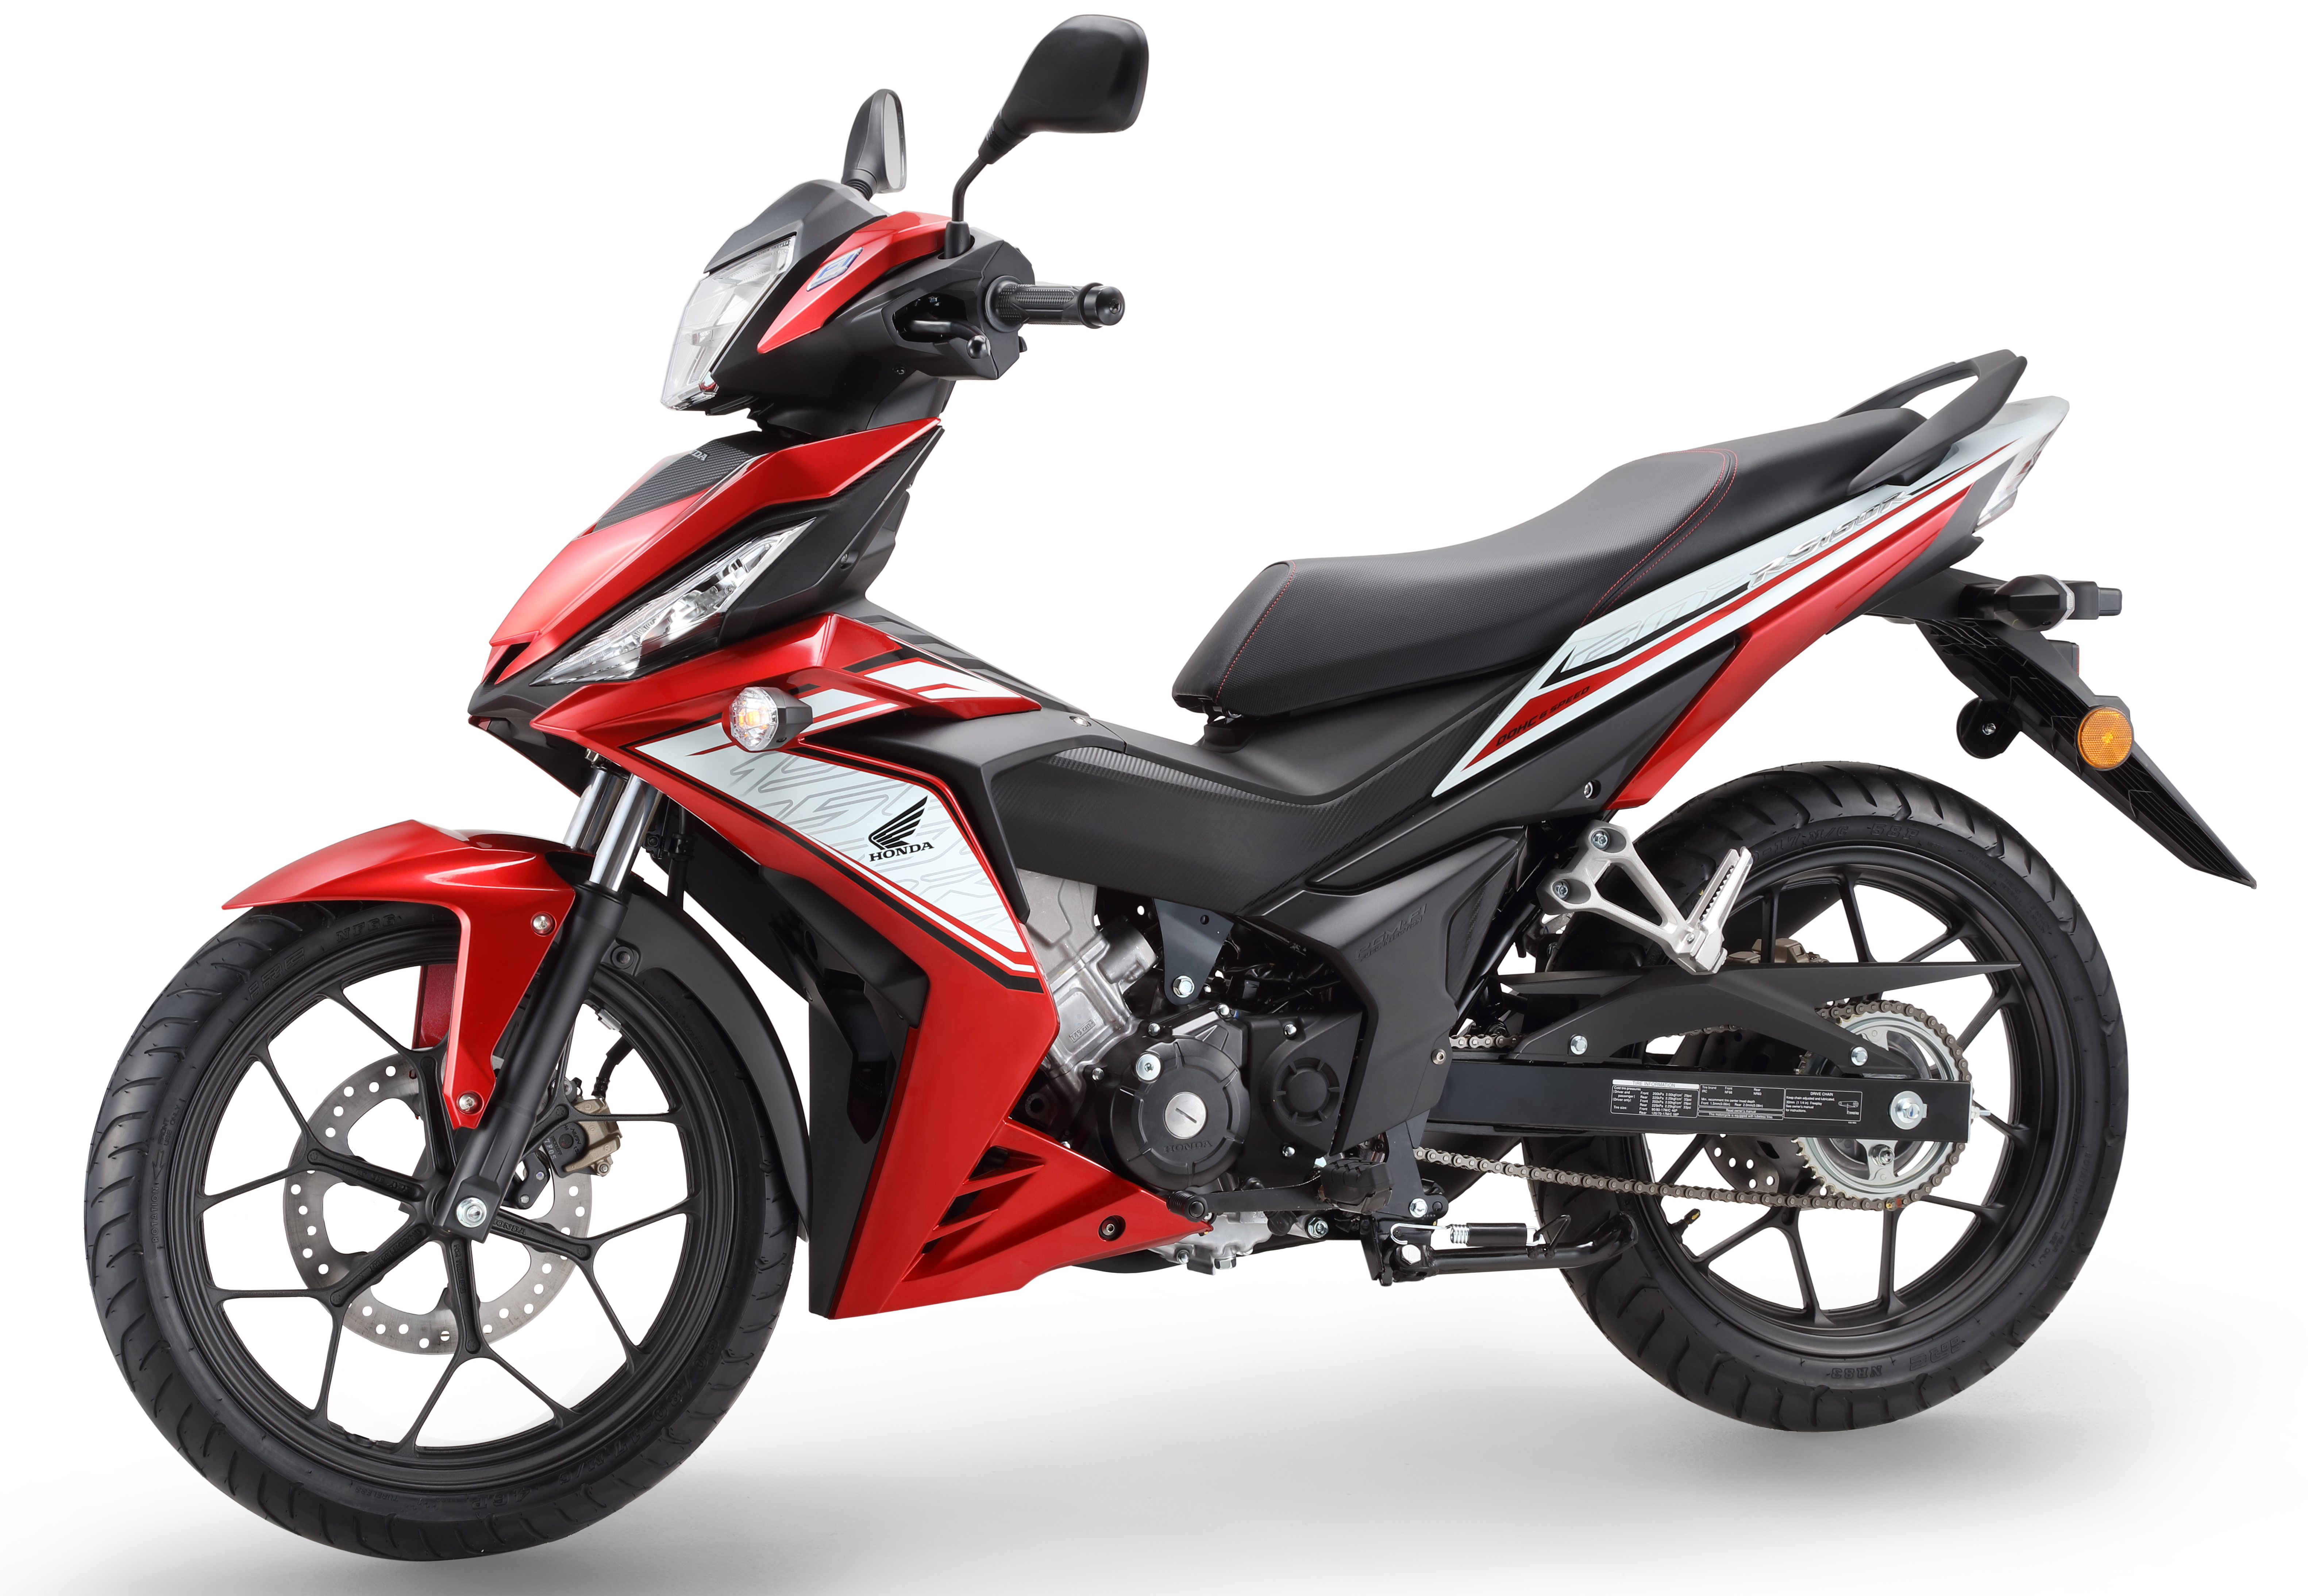 2017 Honda RS150R in new colours